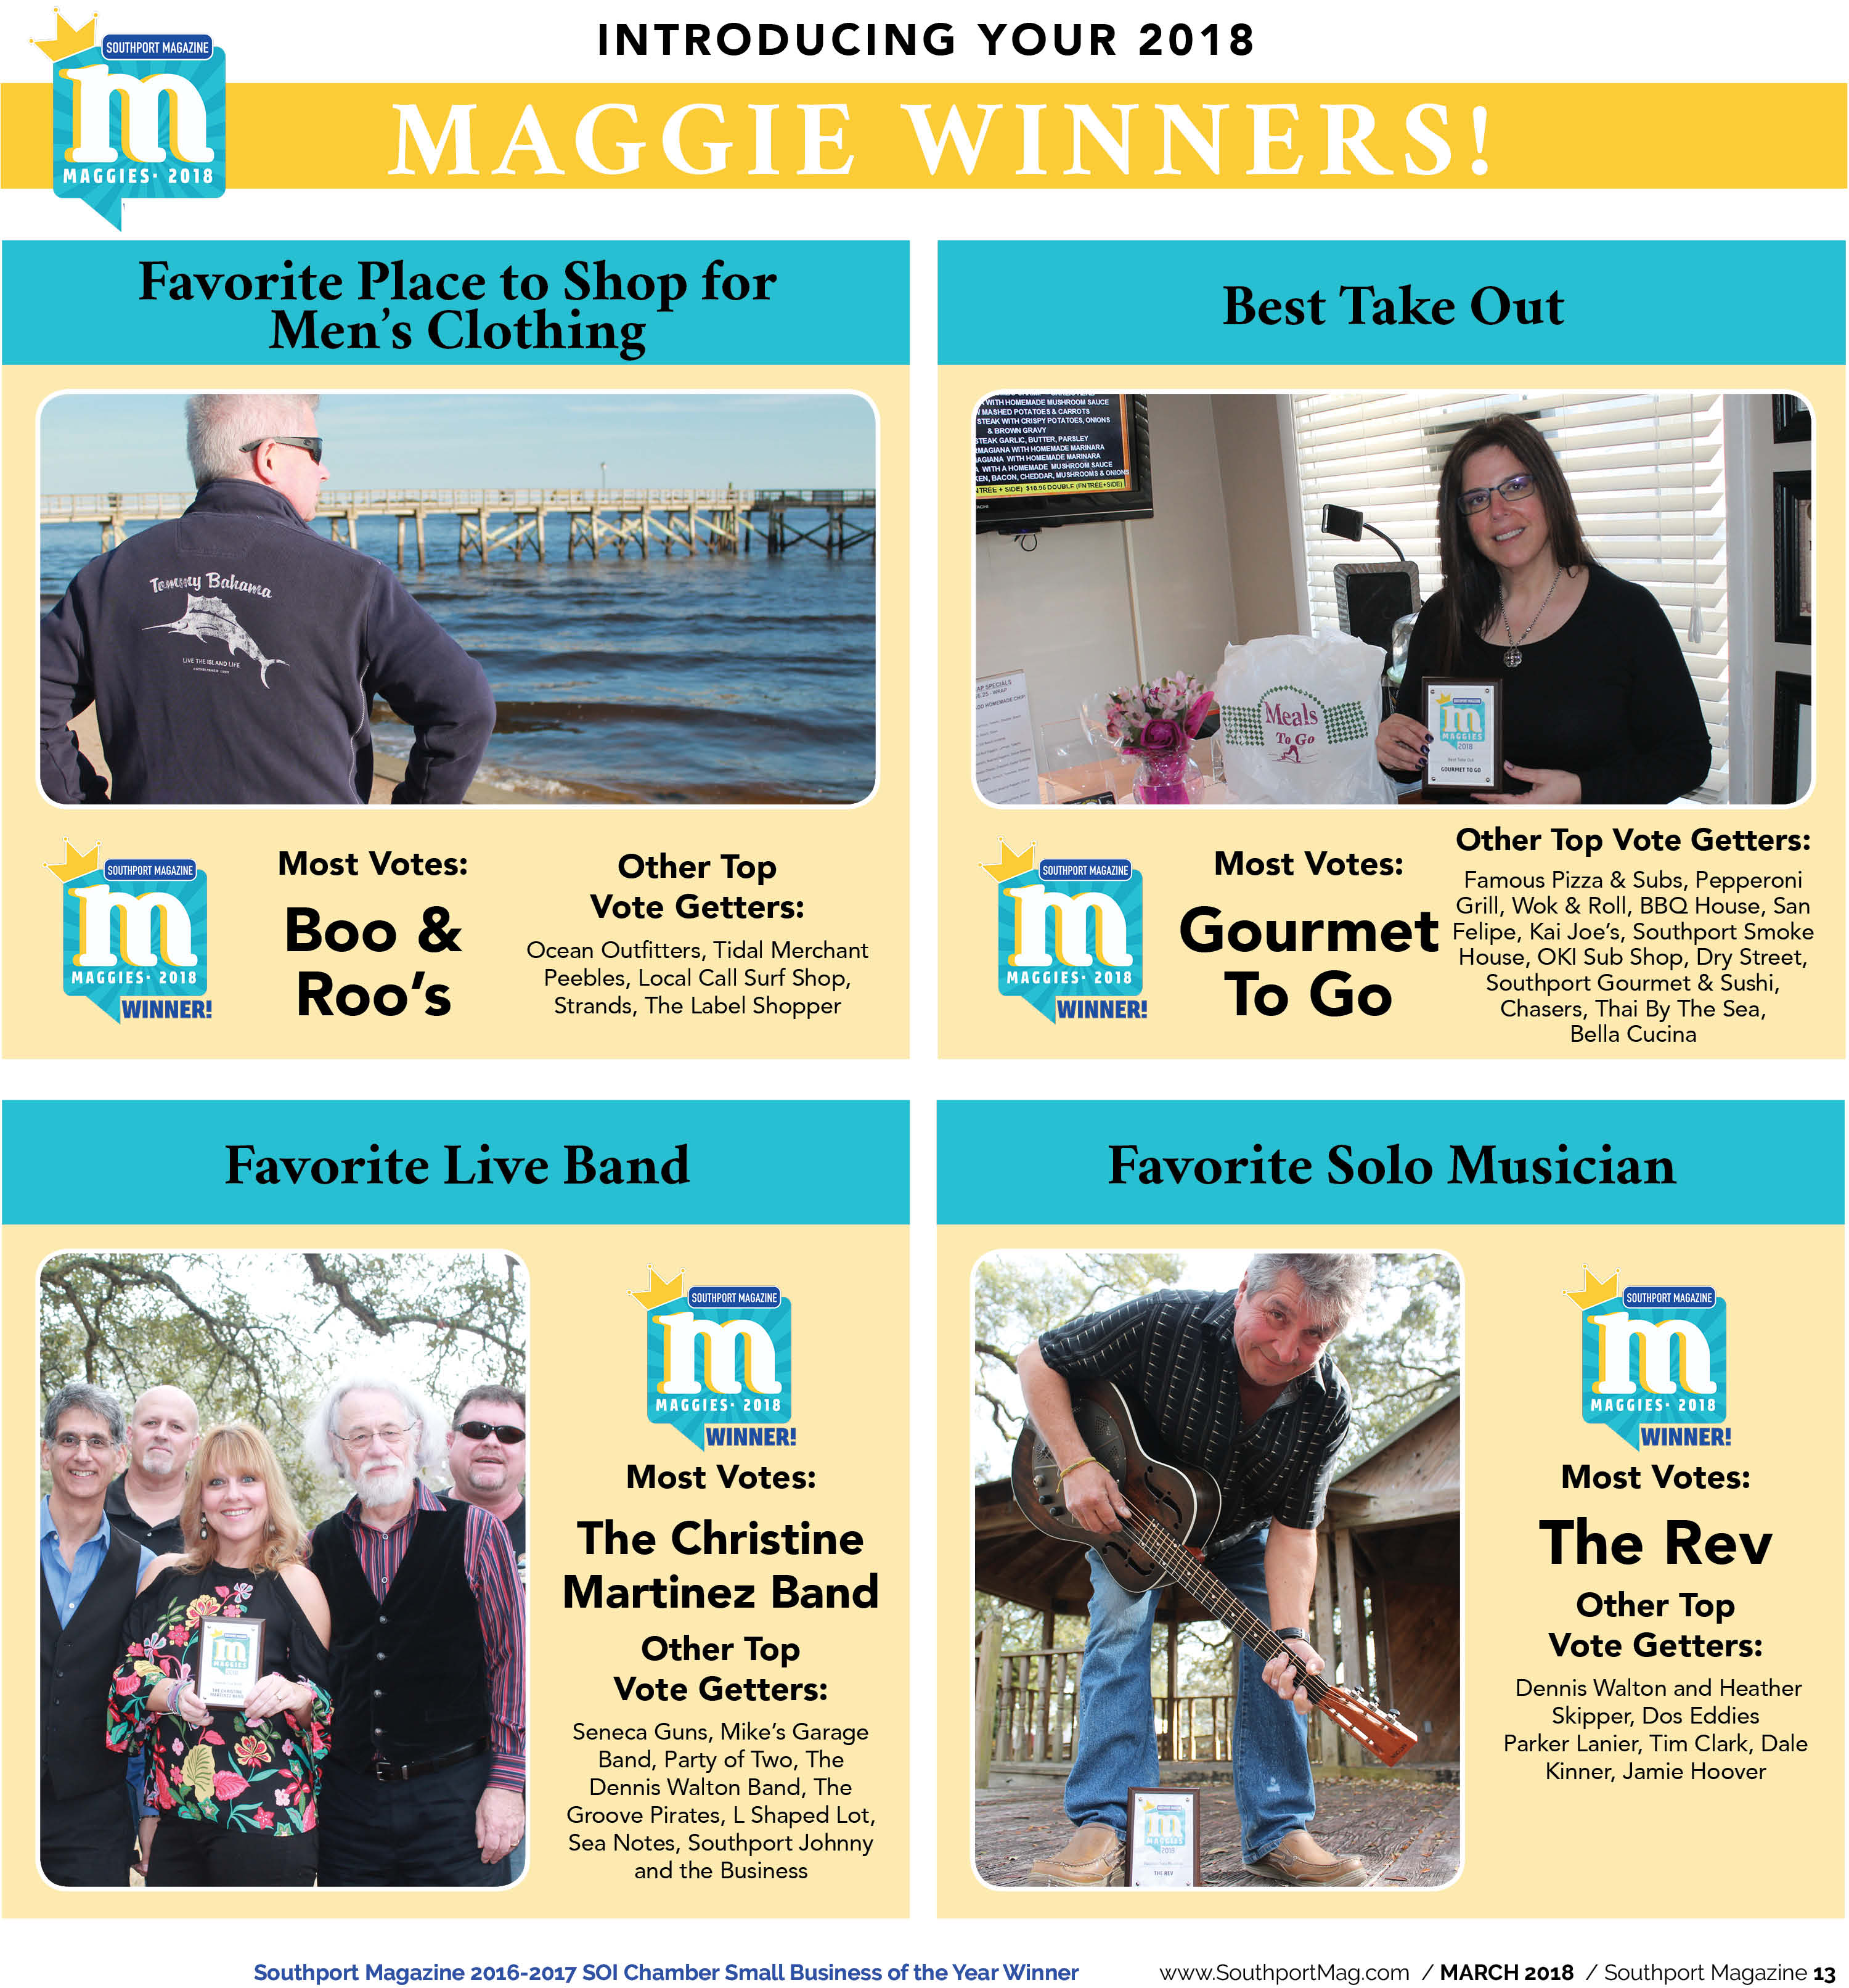 The Results are in, and the Maggie Goes to…   Southport Magazine